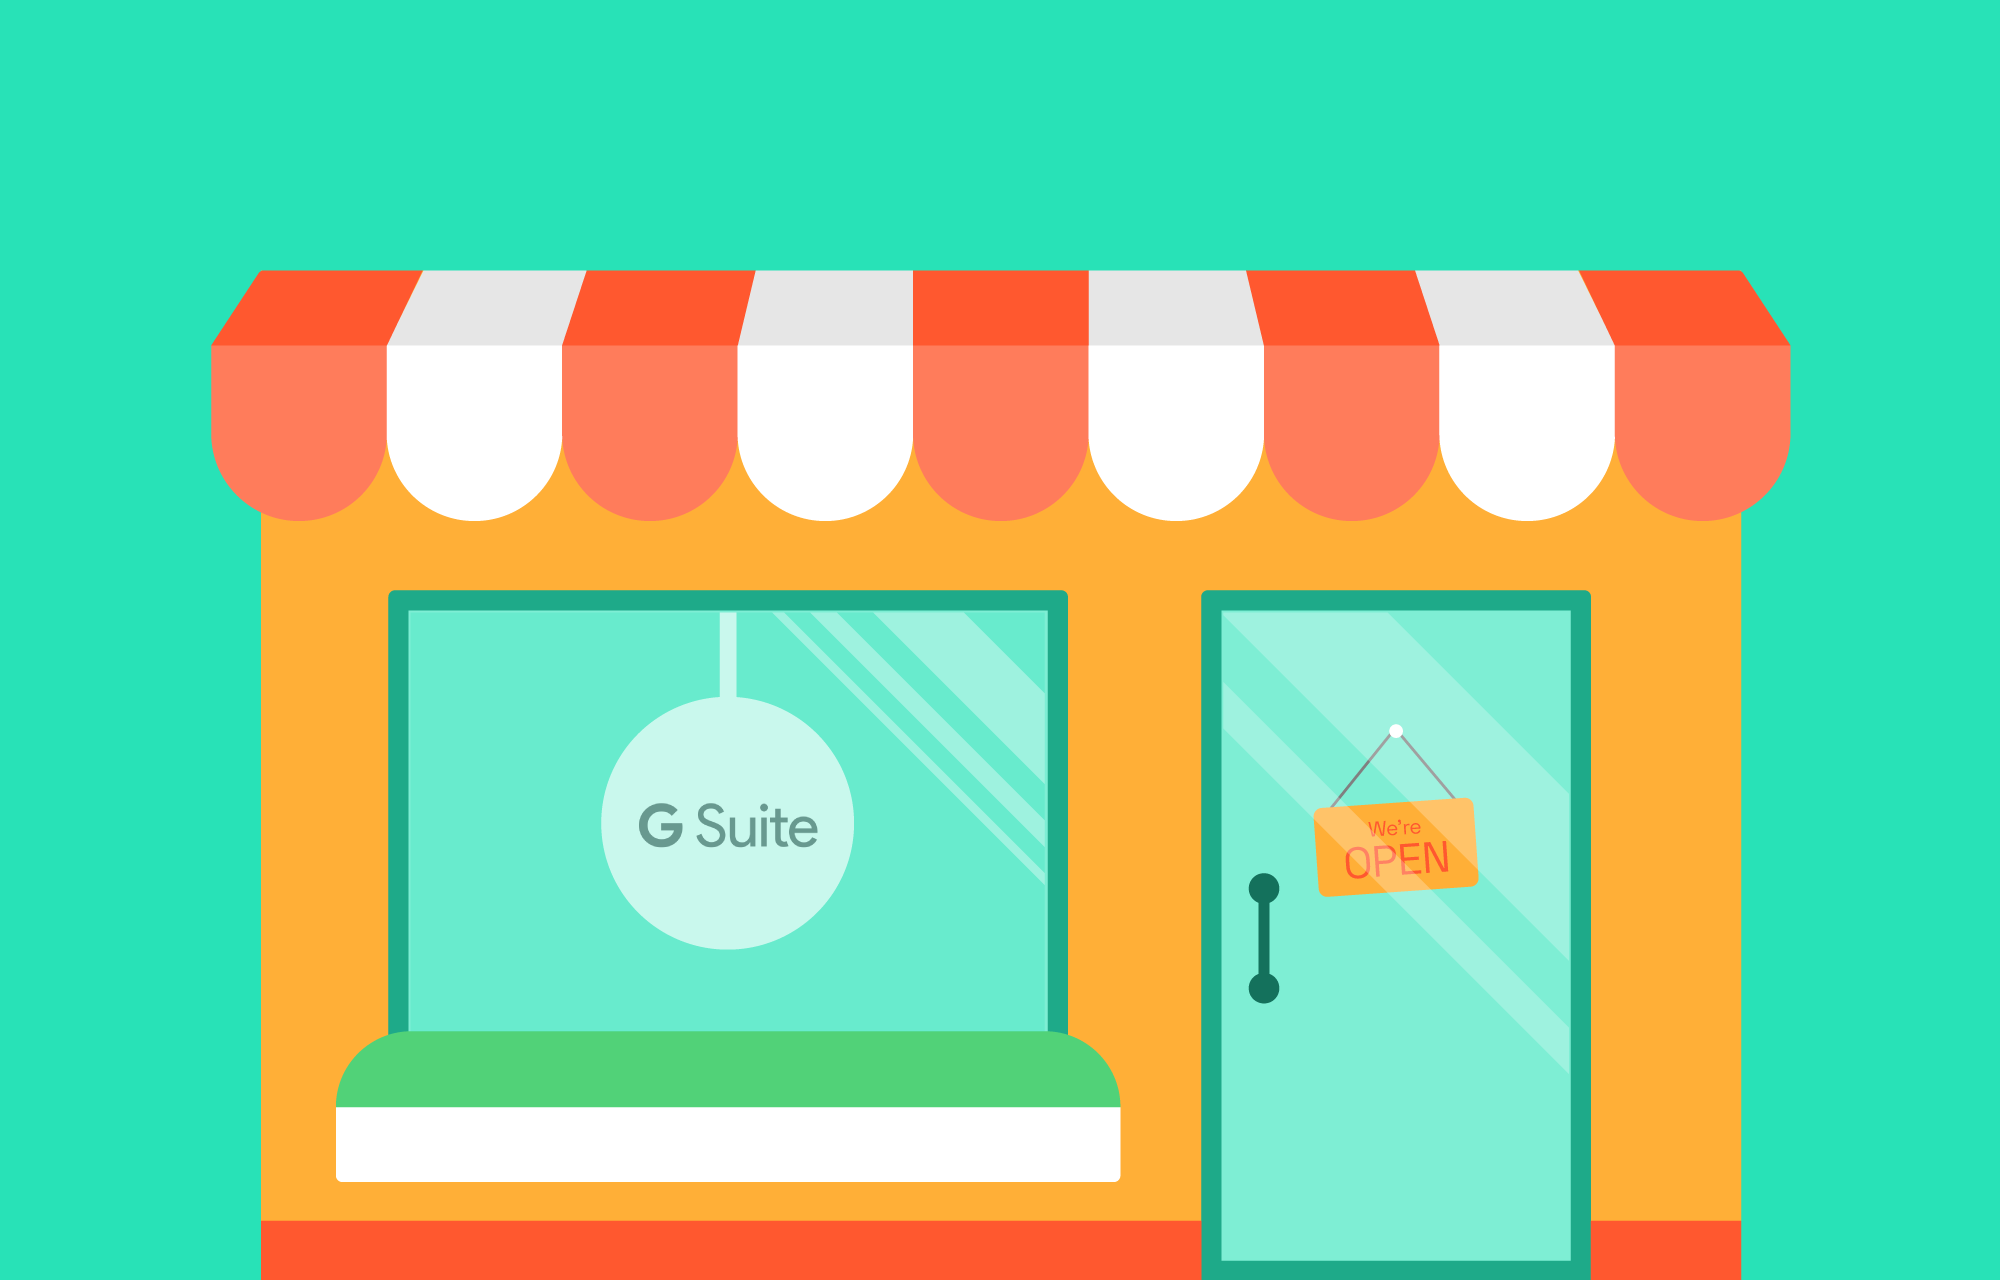 G Suite logo in a resellers shopping window